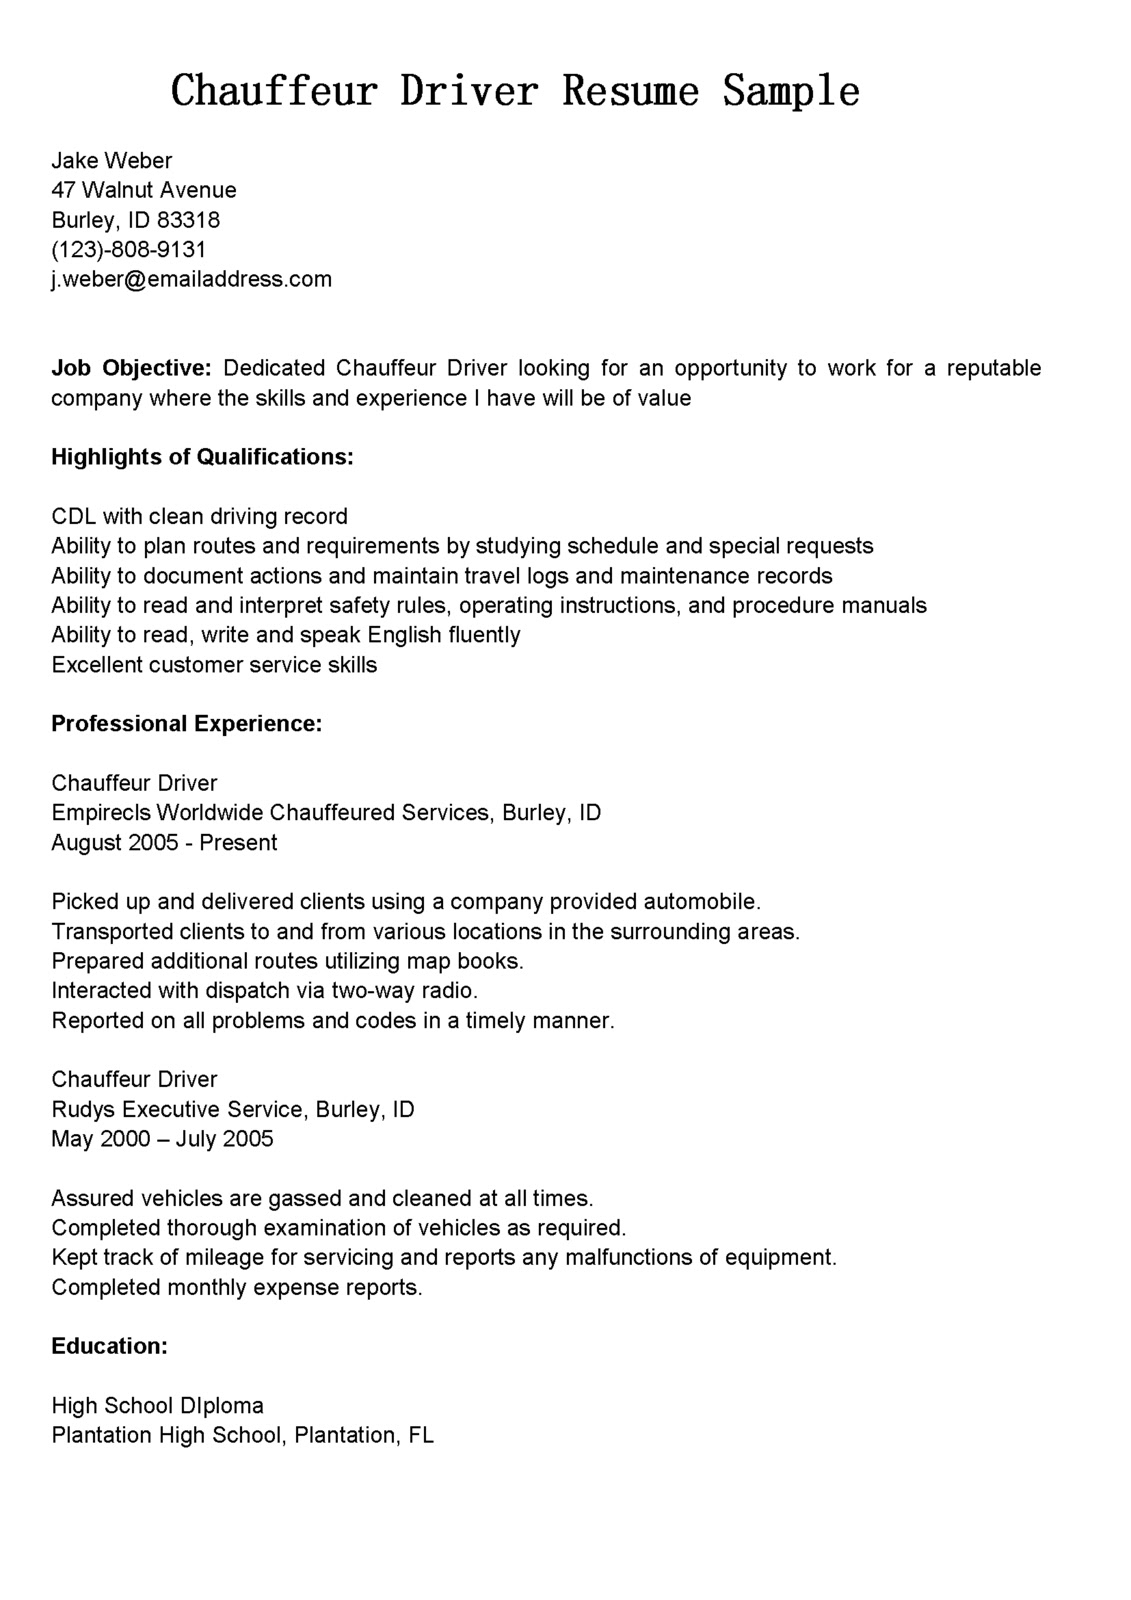 Driver Skills Resume Driver Resumes Chauffeur Driver Resume Sample